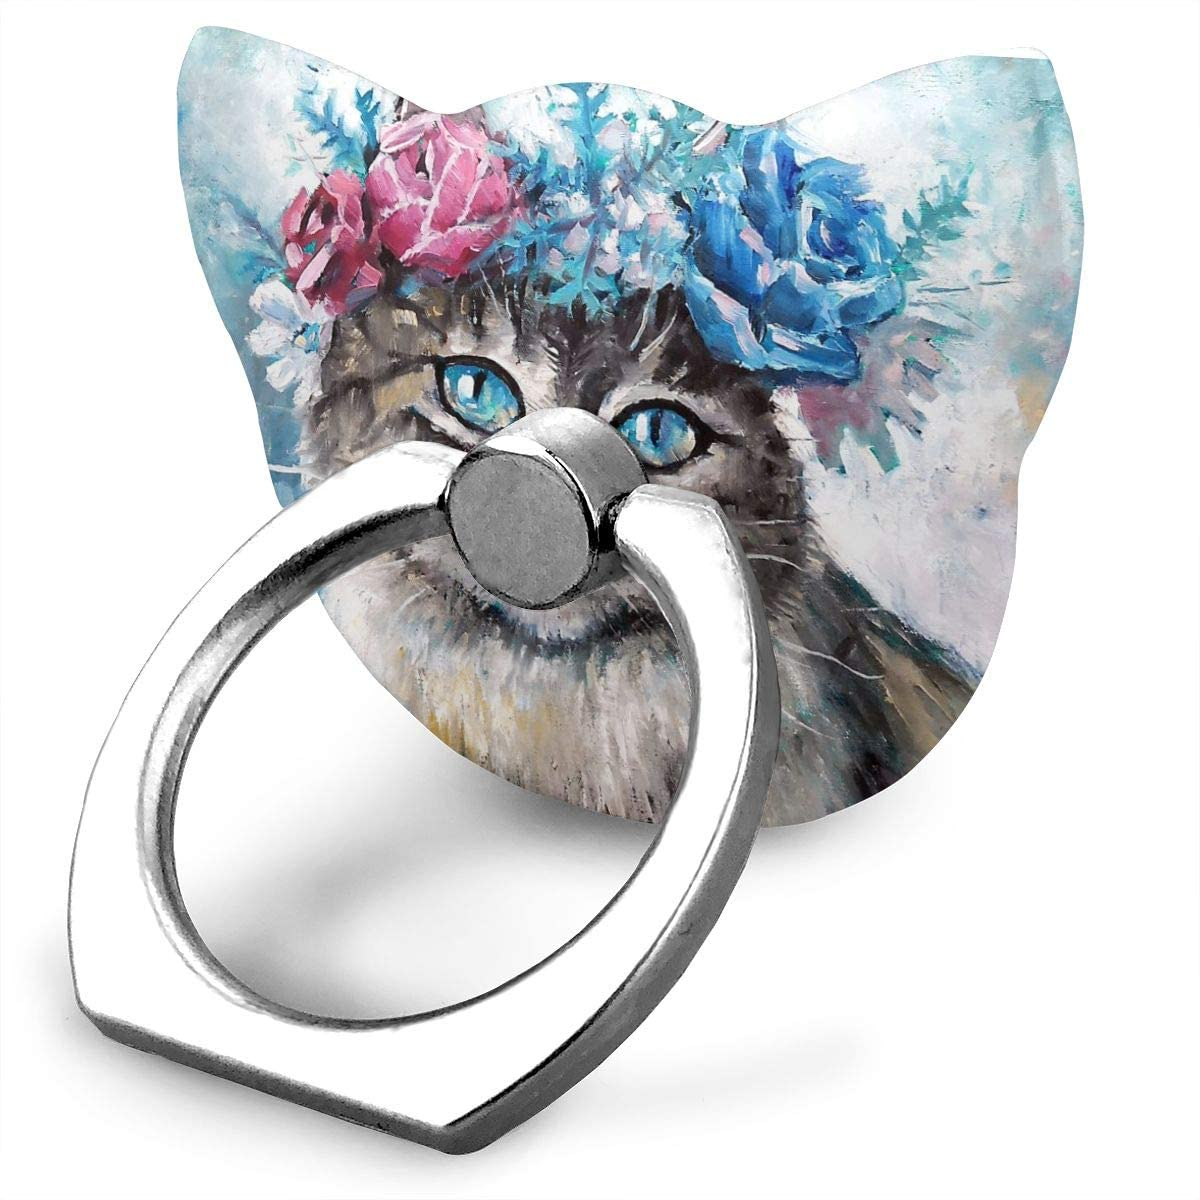 Universal Phone Ring Holder Painting Cute Cat in Flower Wreath Adjustable 360°Rotation Cat Shape Finger Grip Loop Cell Phone Stand for Phone X/6/6s/7/8/8/10/11 Plus Android Smartphone